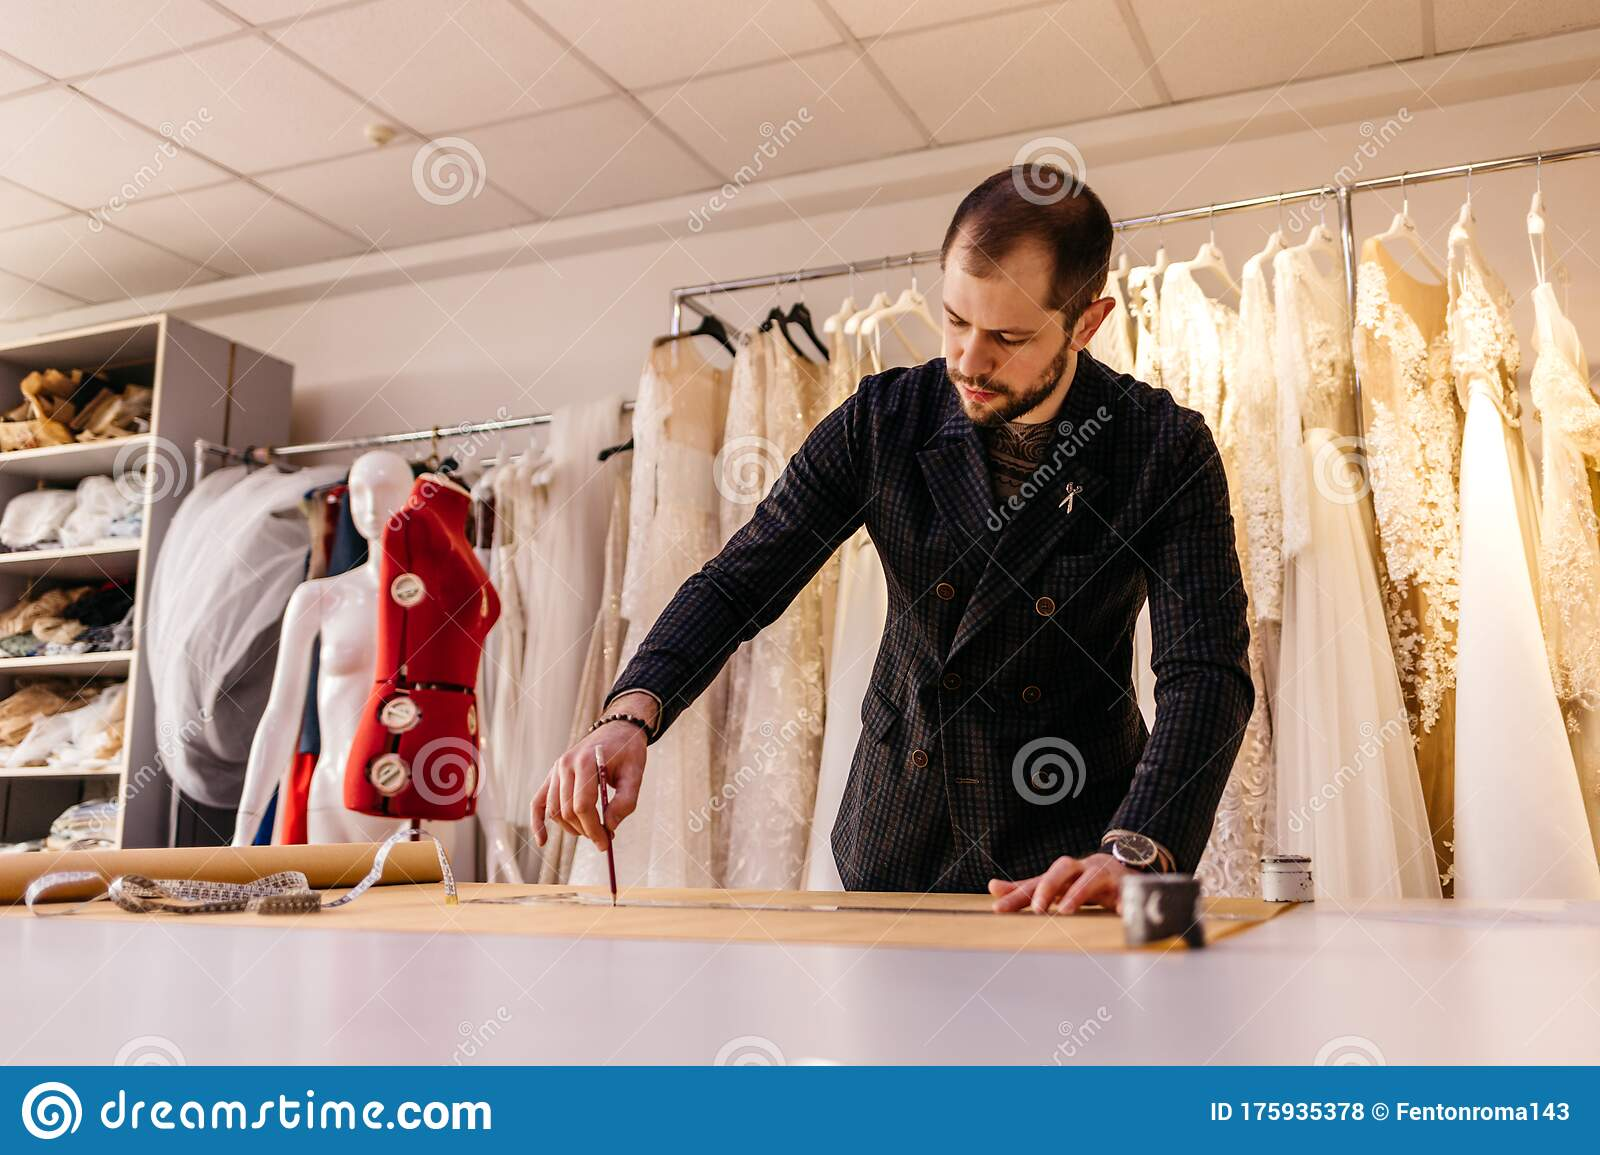 Couple Of Fashion Designers Working With Fabric And Clothing Sketches At The Studio Full Of Tailoring Tools And Equipment Stock Photo Image Of Cloth Fashionable 175935378